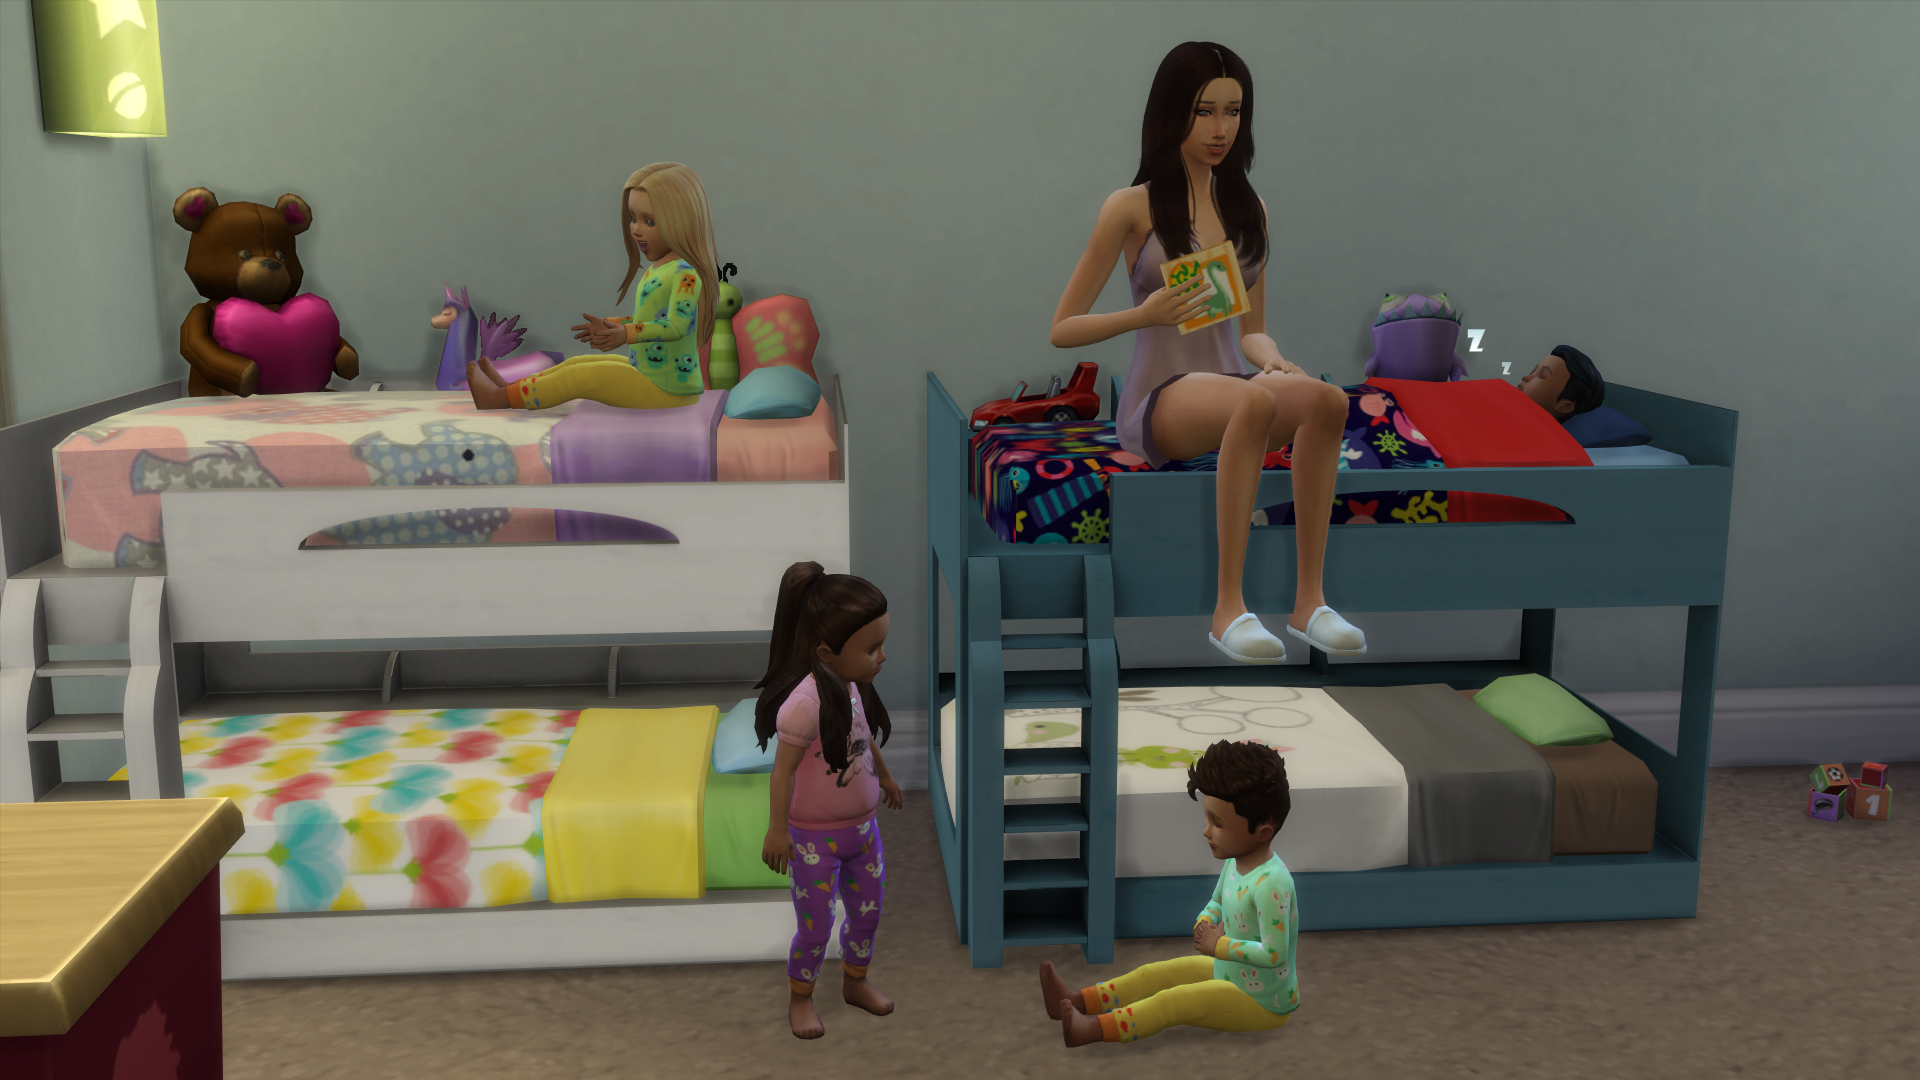 Create Bunkbeds With Moo Page 2 The Sims Forums